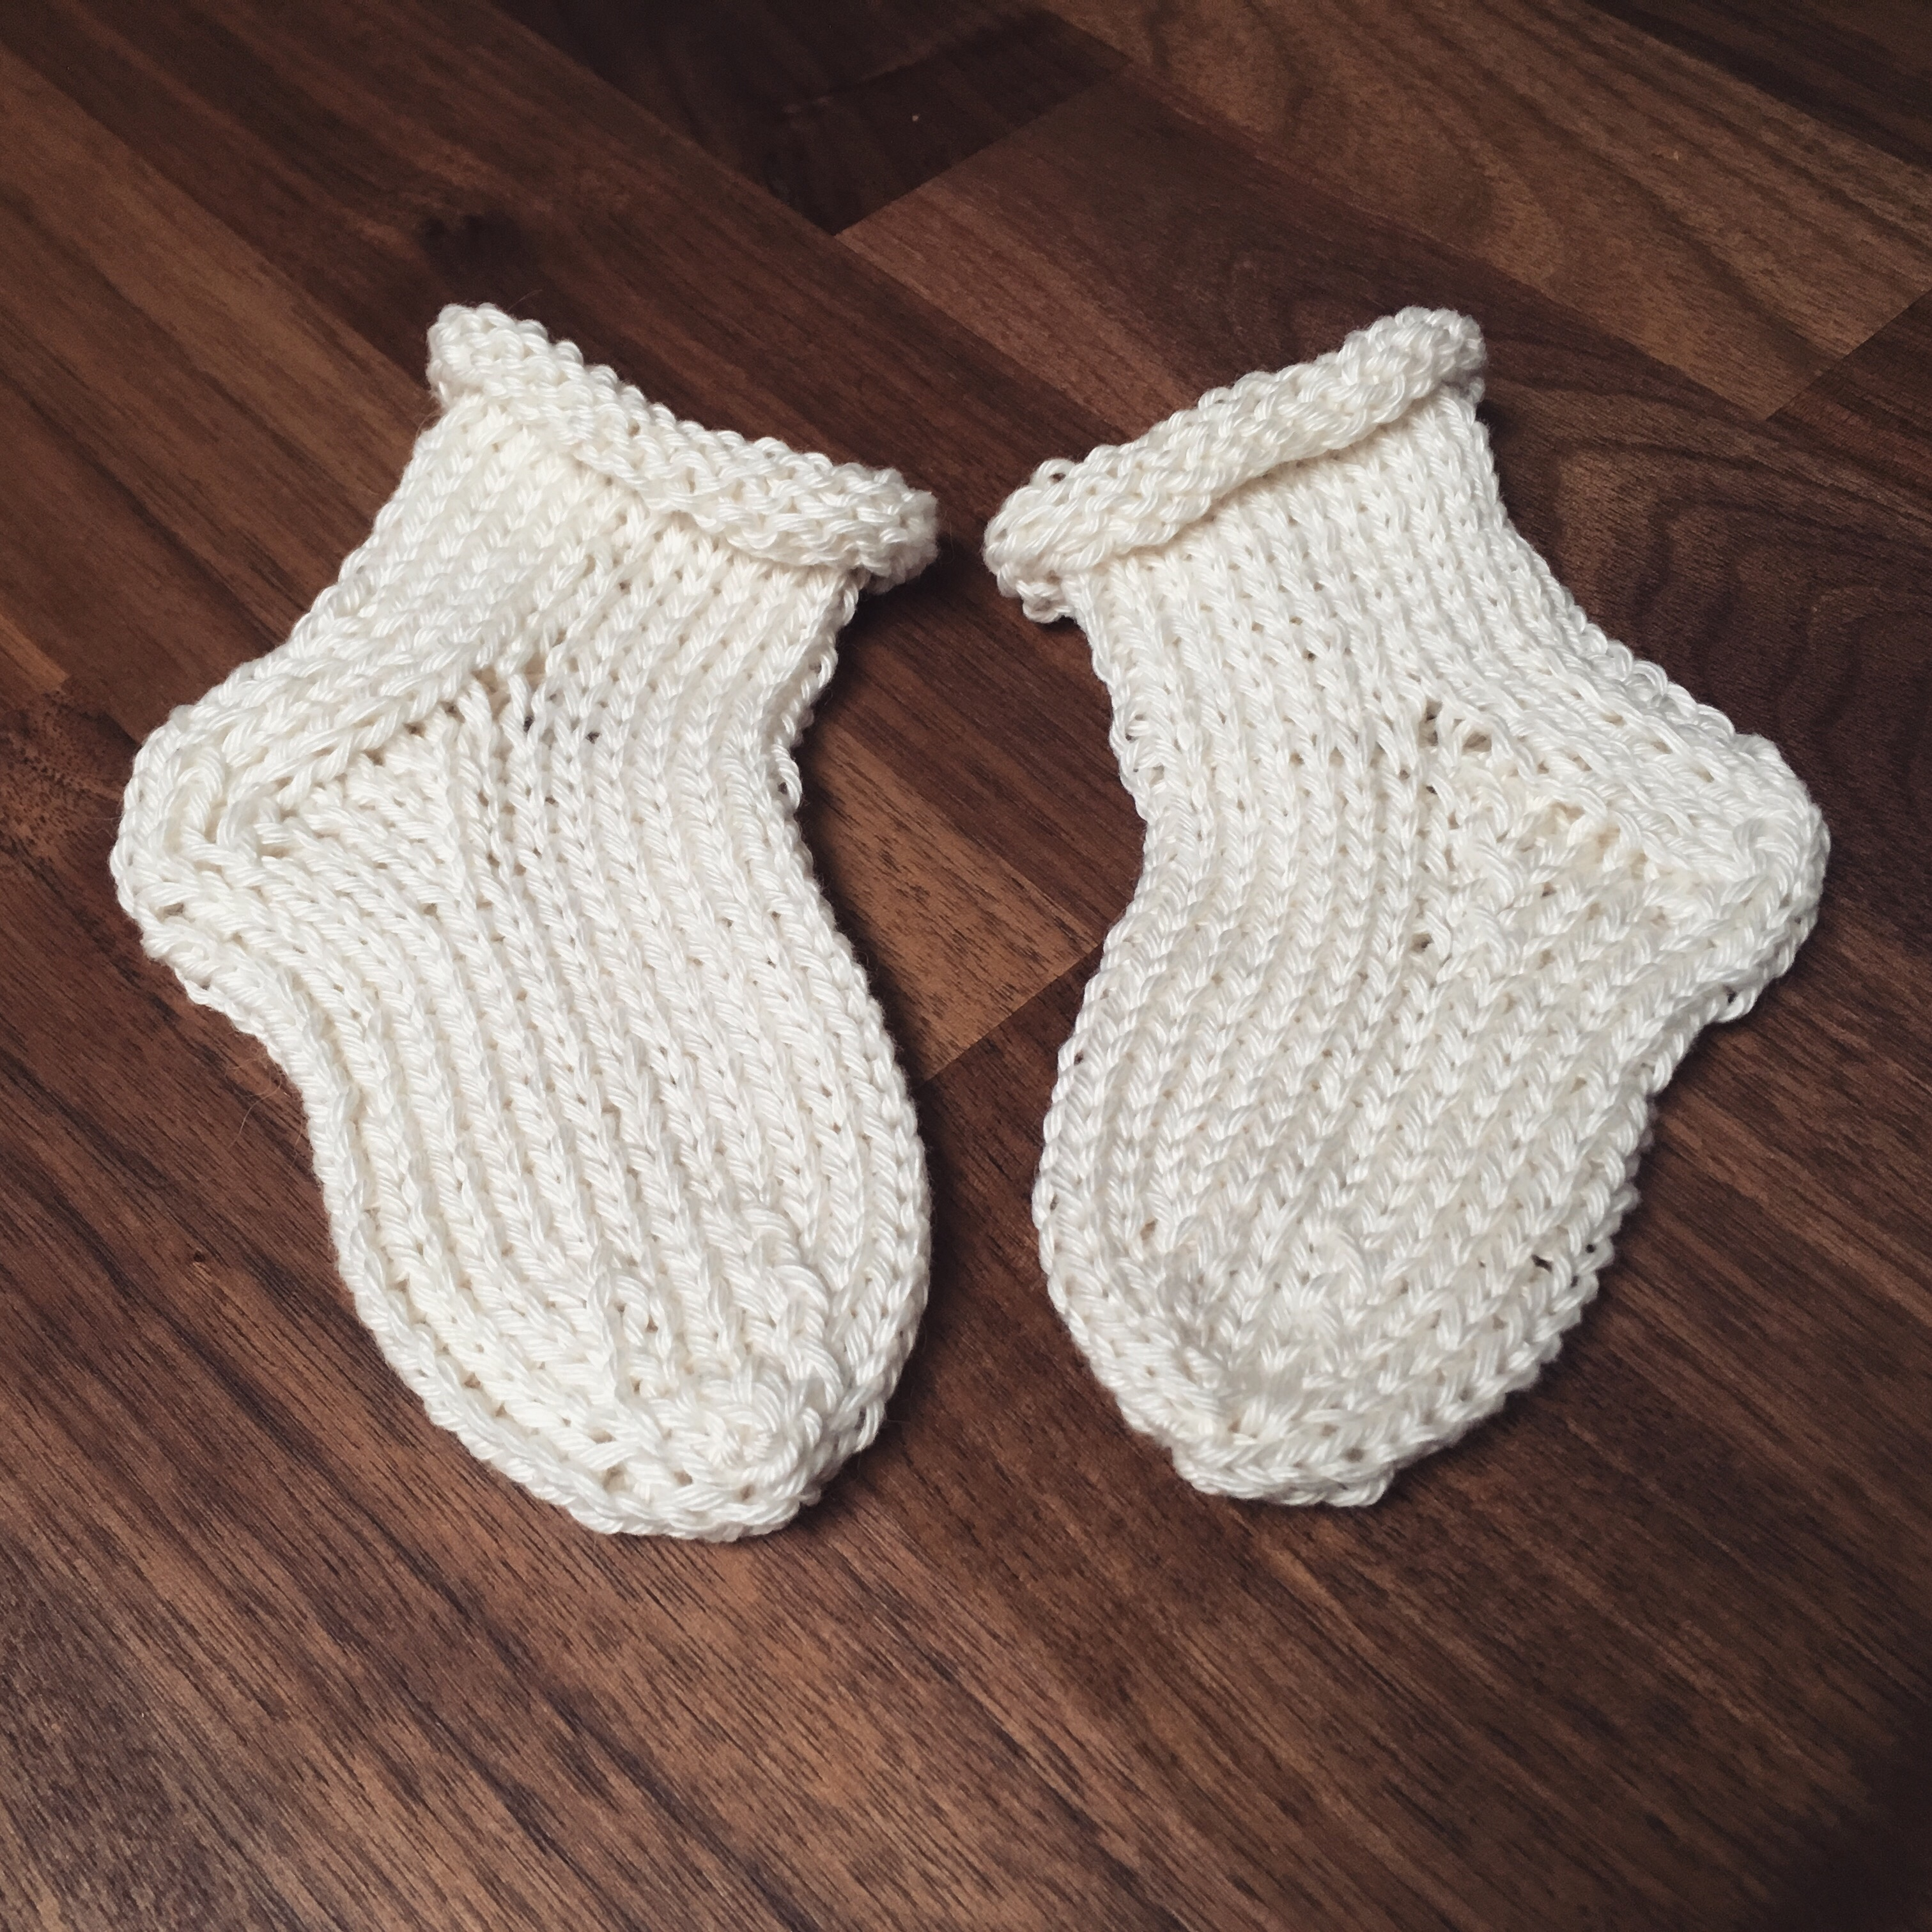 Knitting Baby Socks – Fox on an Island